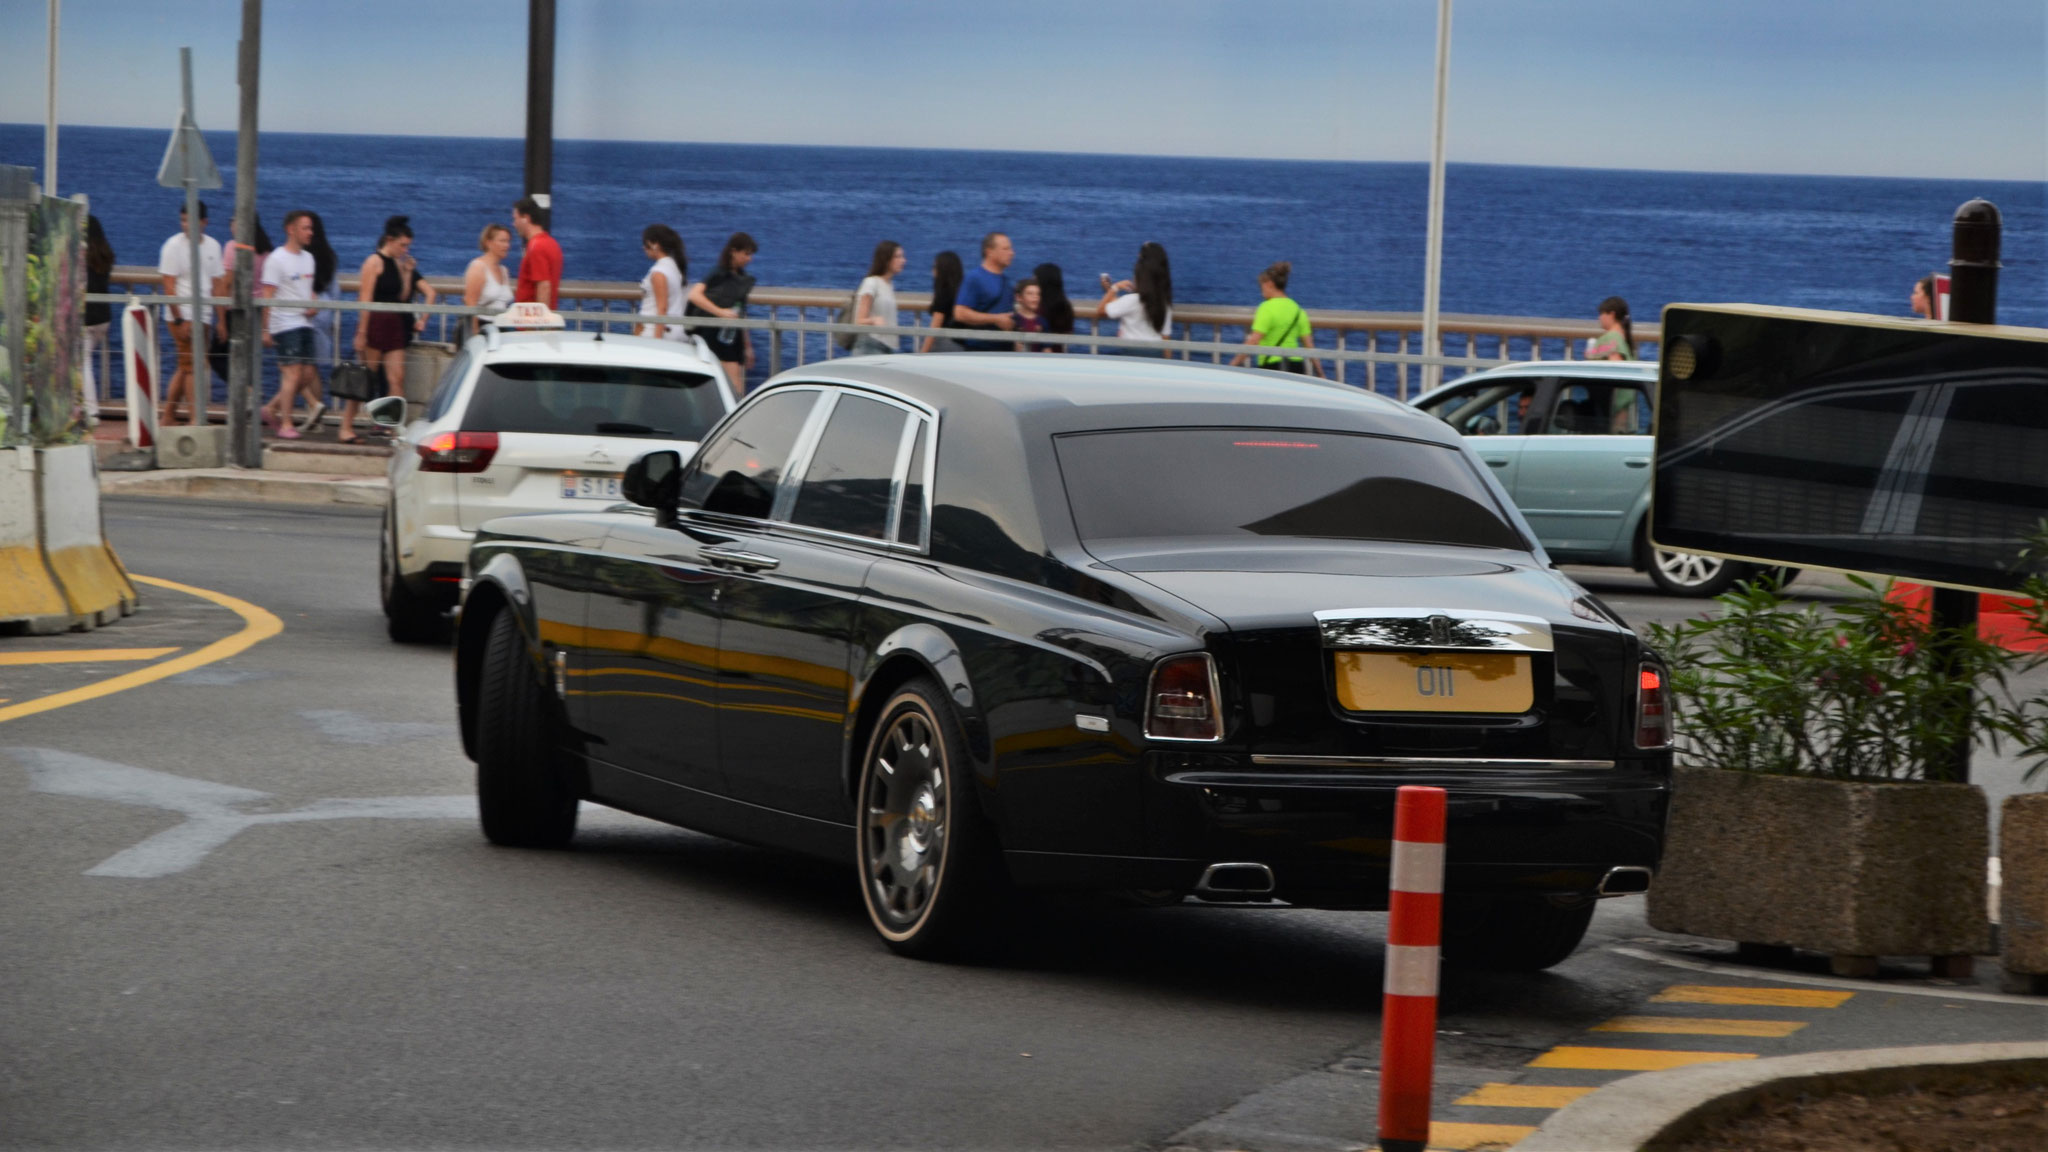 Rolls Royce Phantom - O11 (GB)